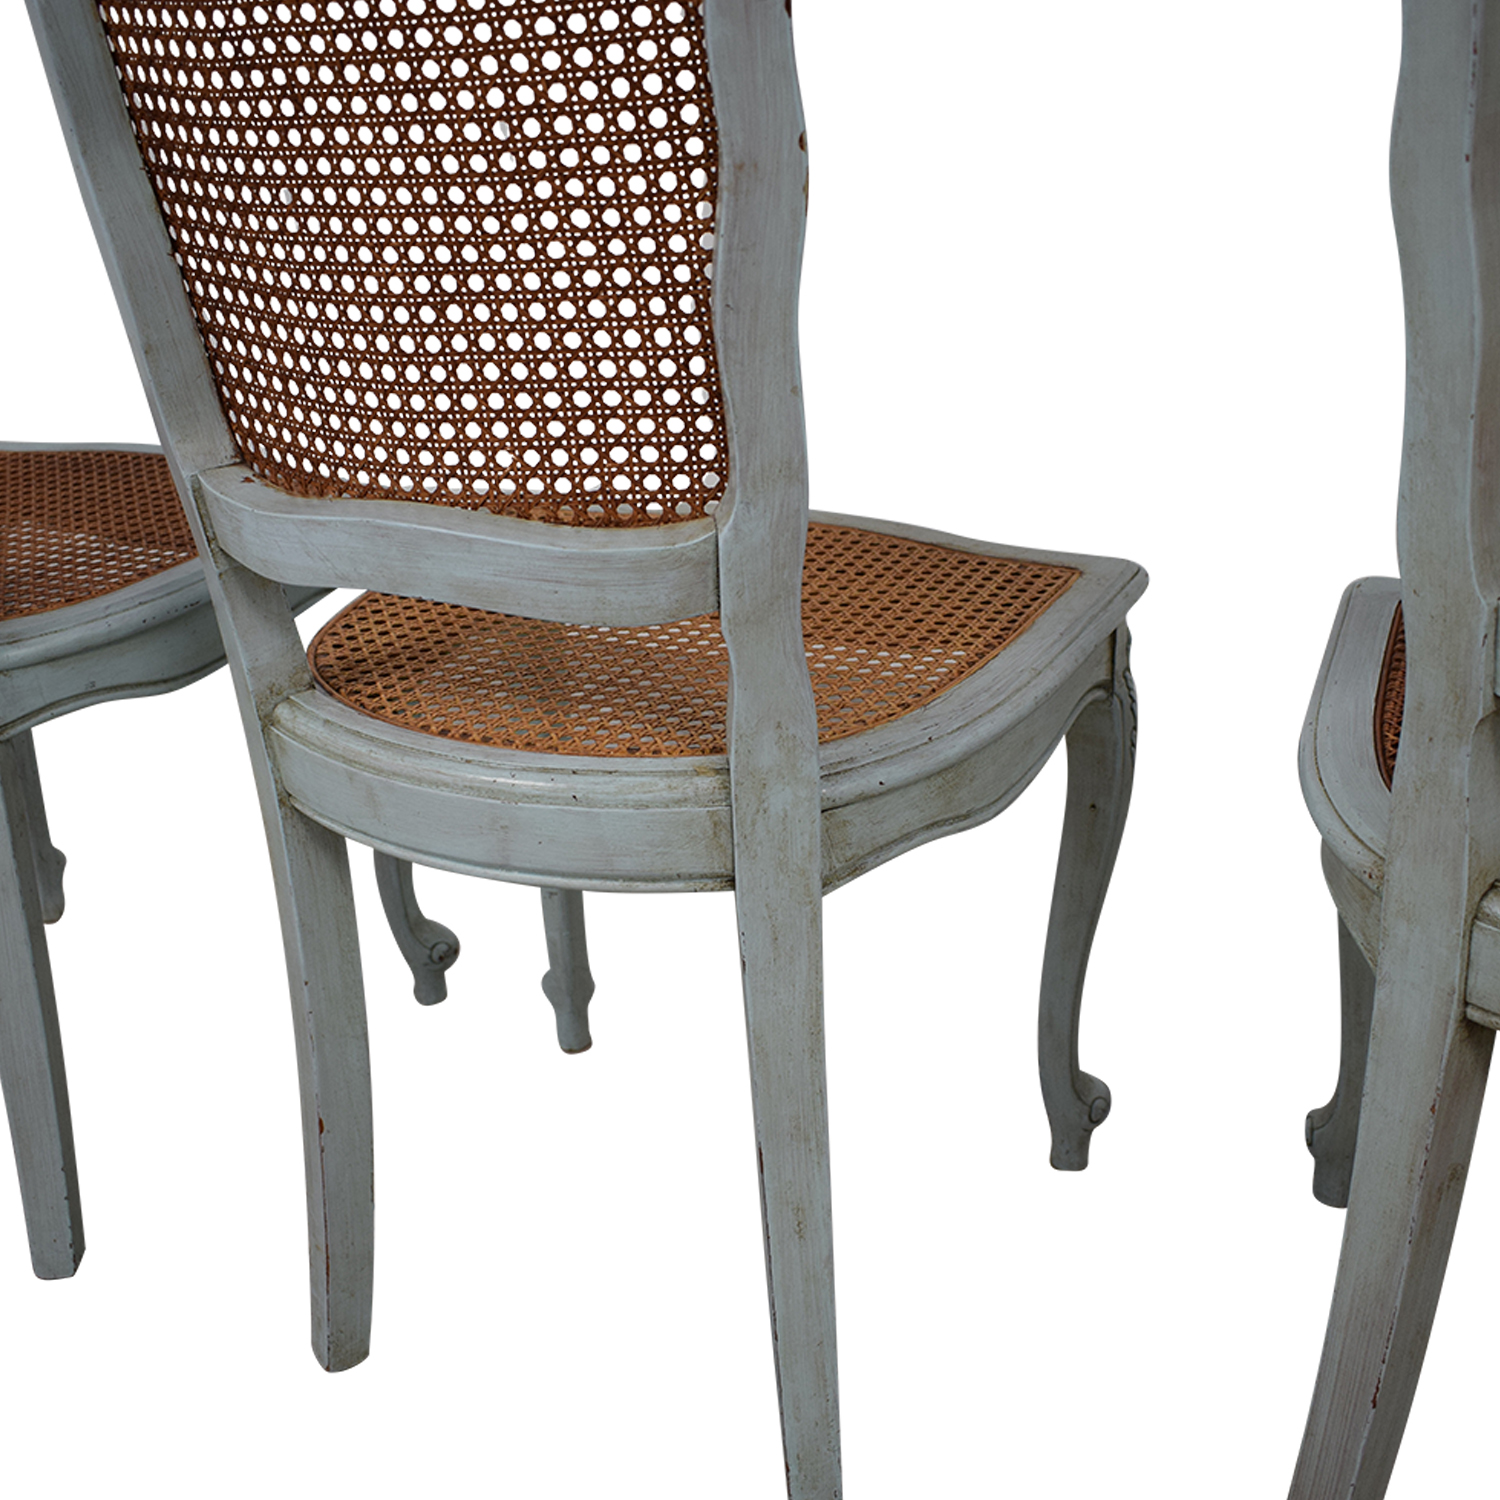 ABC Carpet & Home ABC Carpet & Home French Wicker Chairs